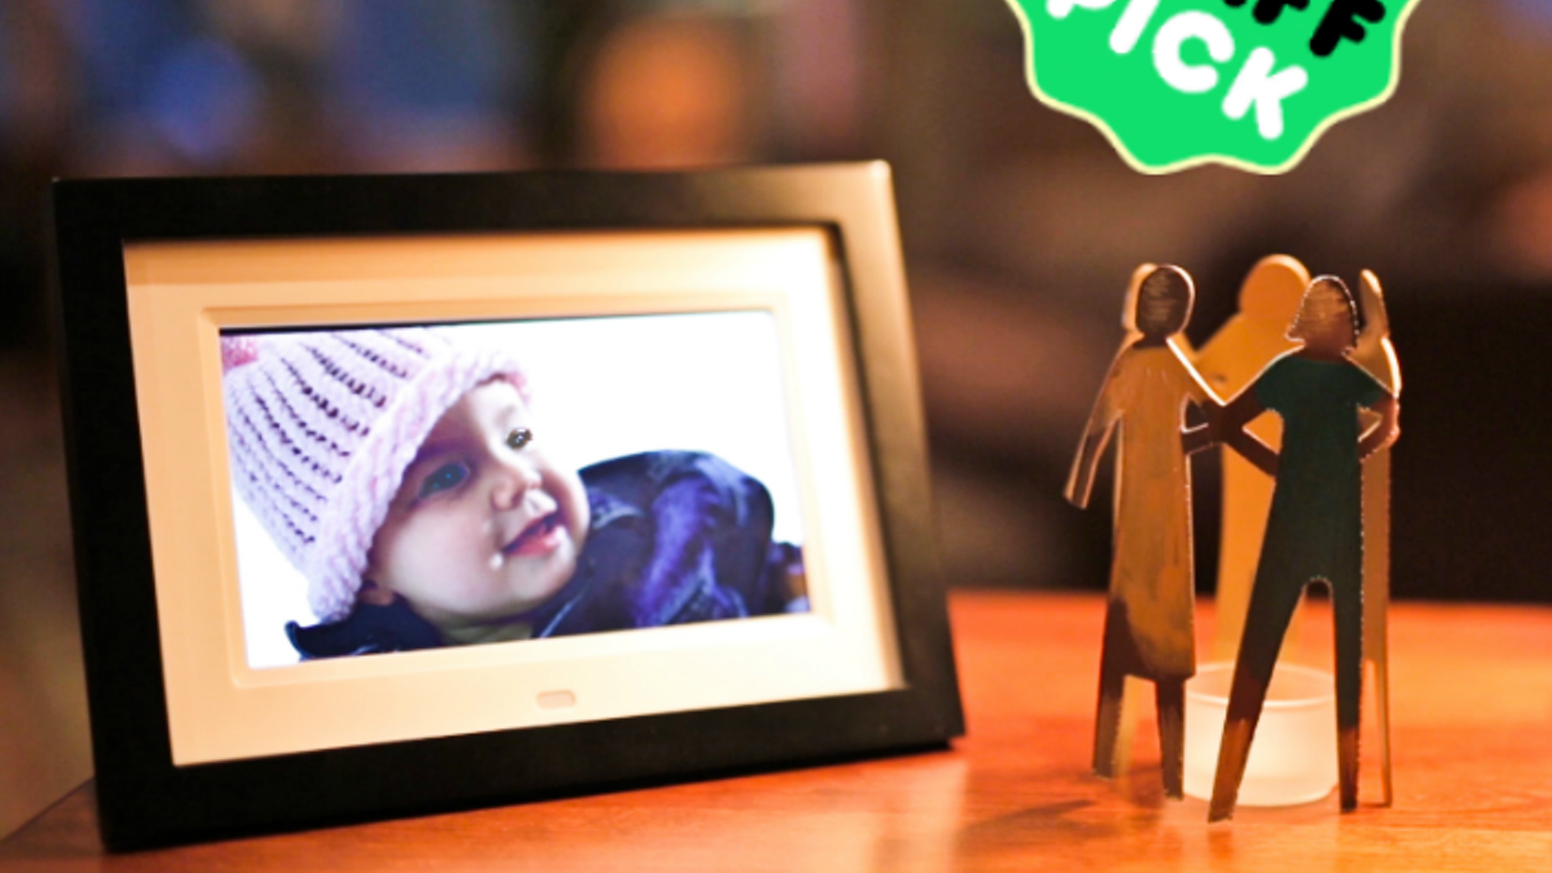 A beautiful touch-screen, Wi-Fi connected digital frame that lets you email photos into your loved one's home in seconds.